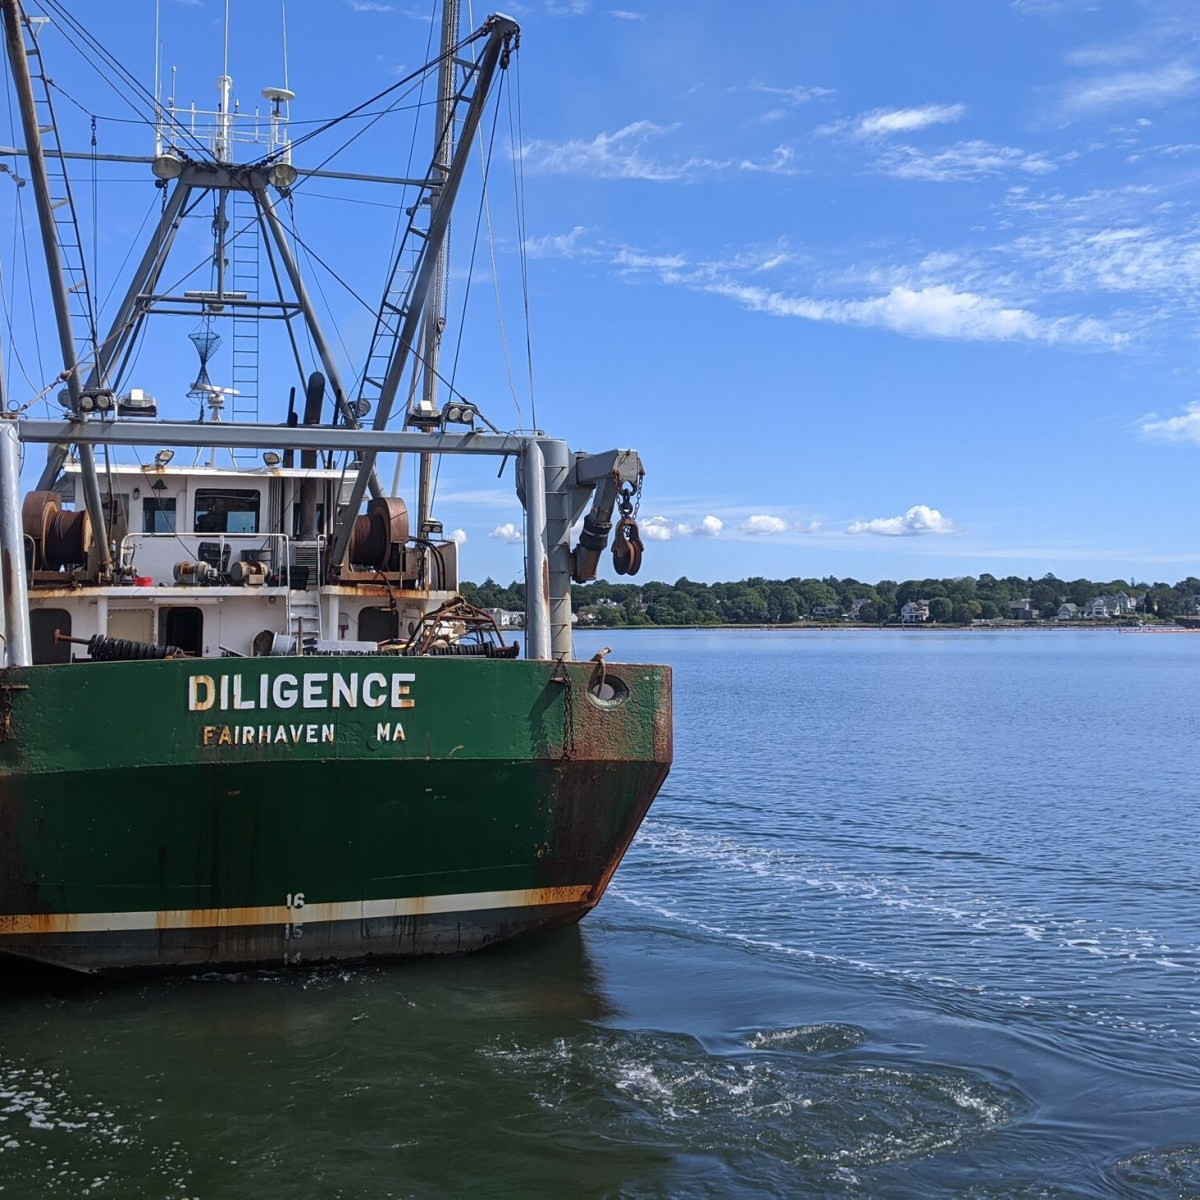 The Diligence motors out of New Bedford.